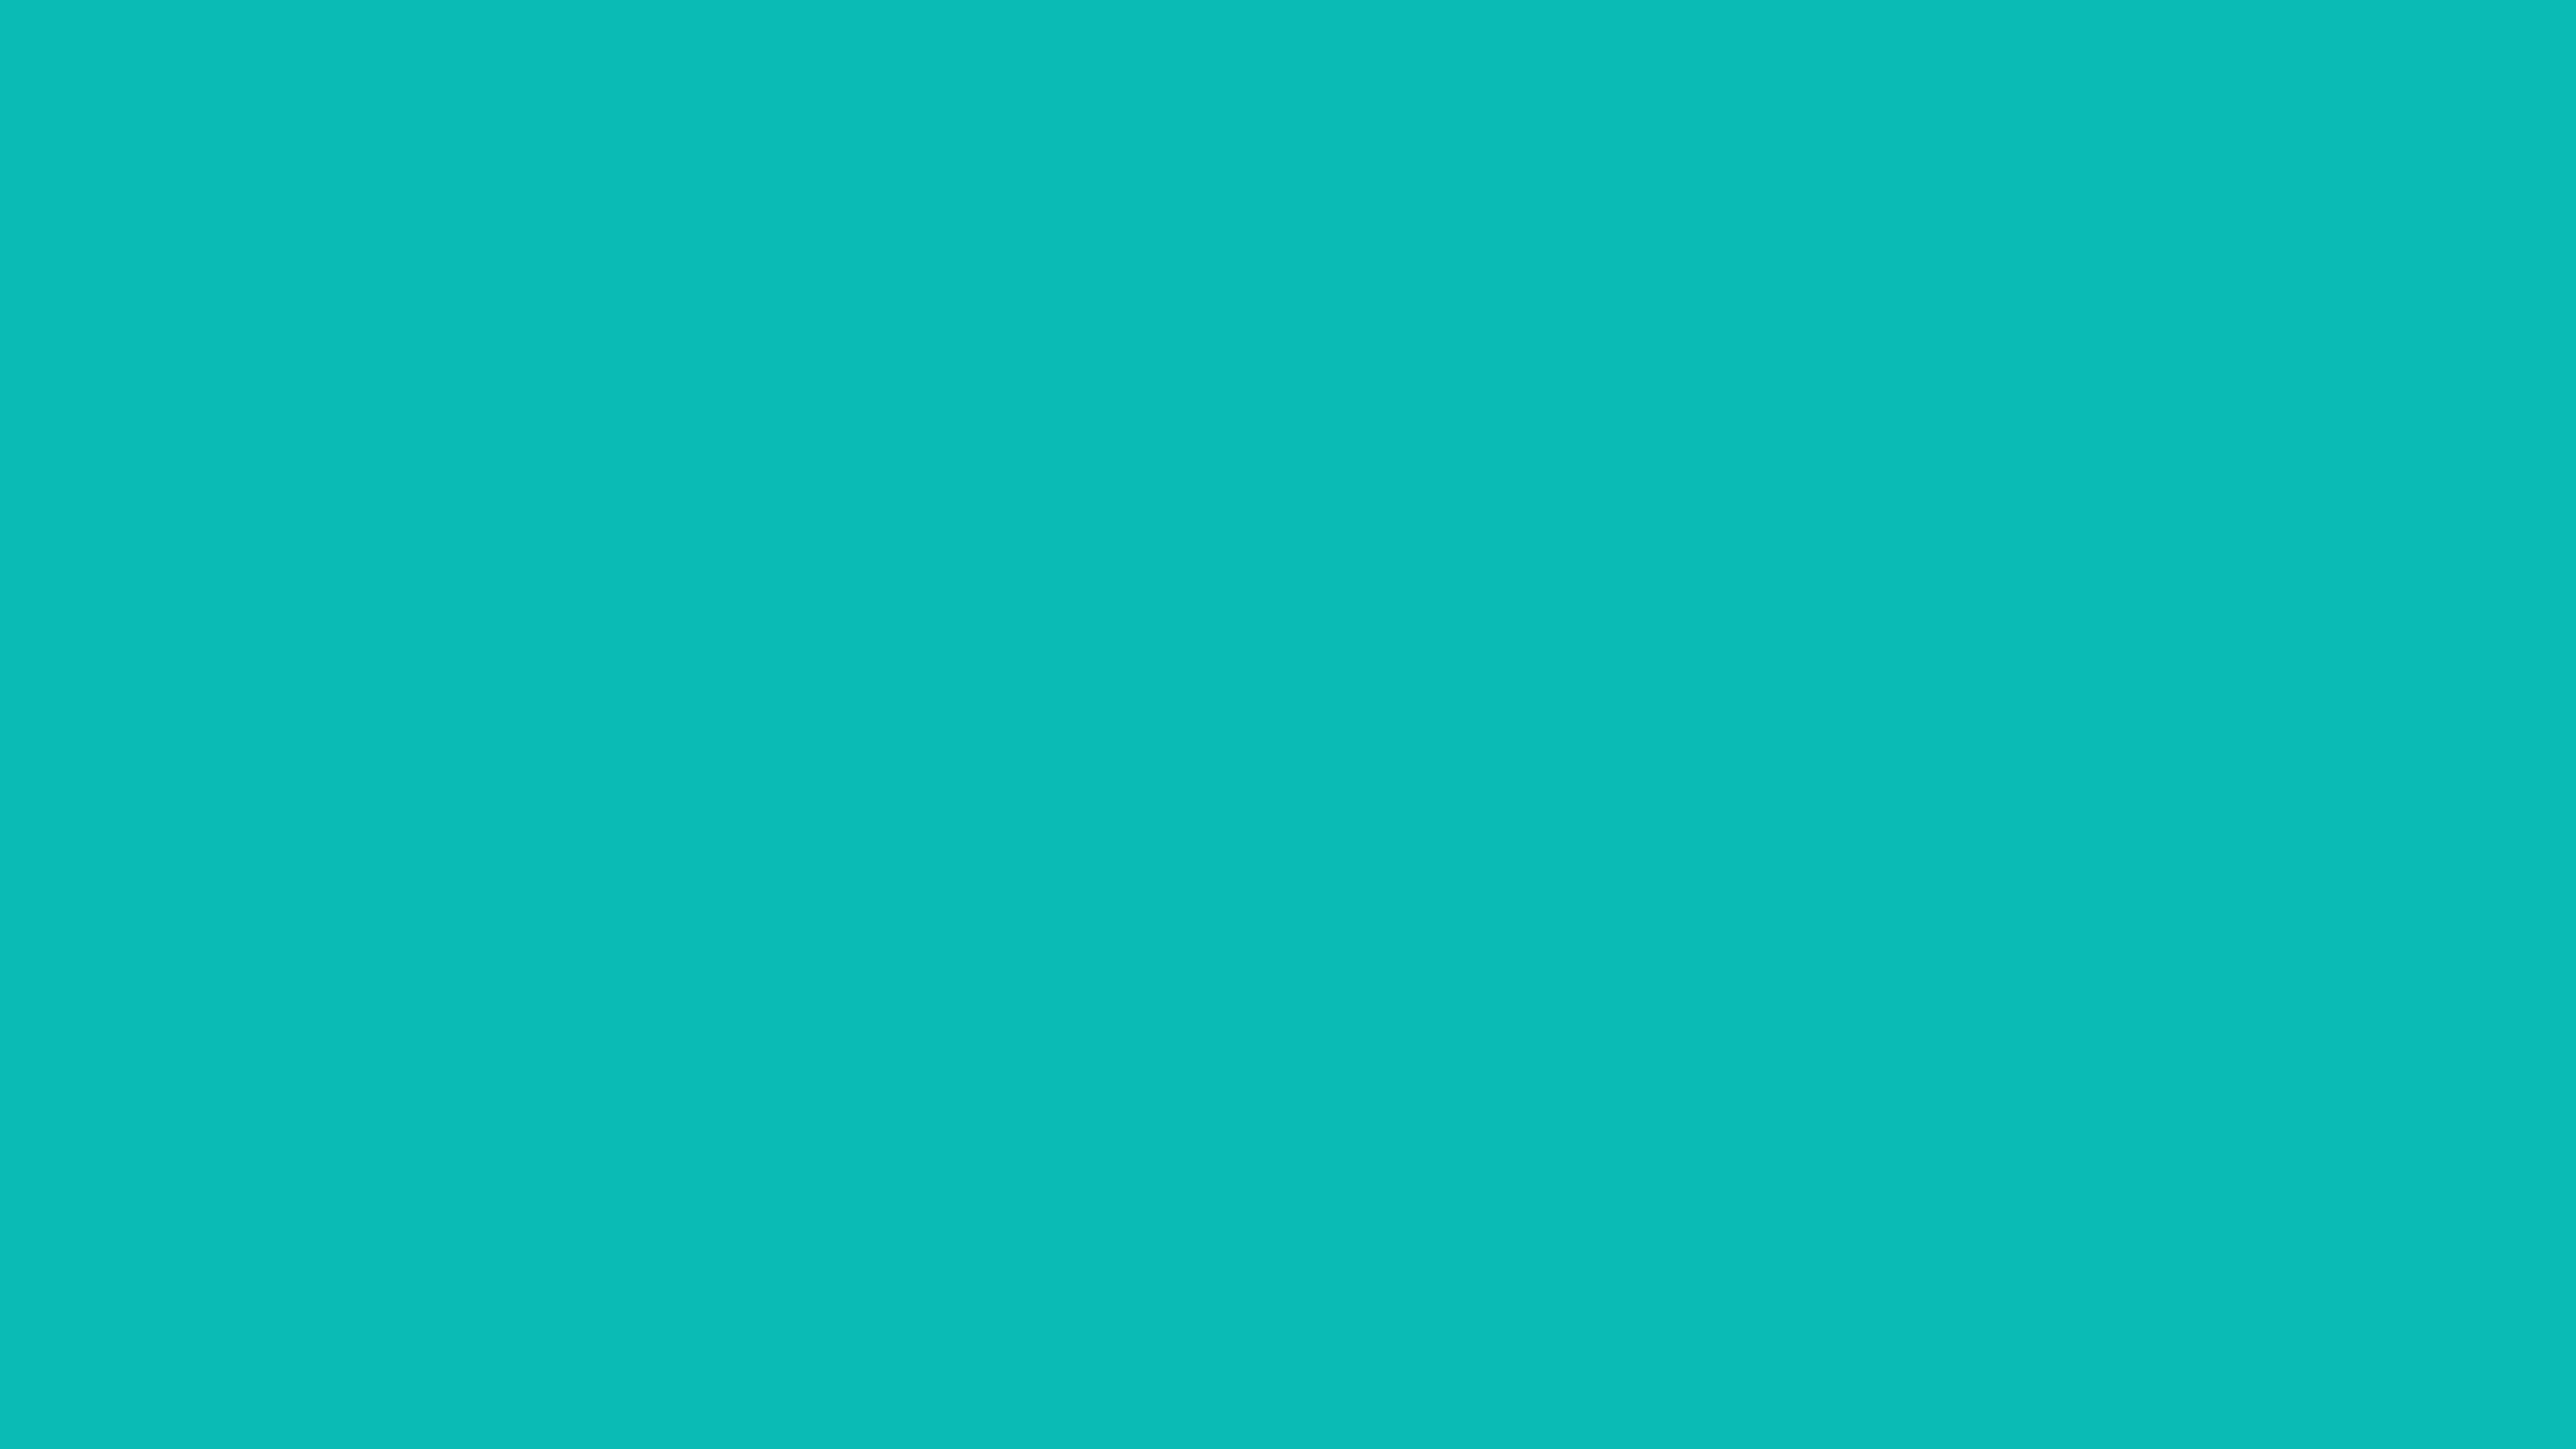 7680x4320 Tiffany Blue Solid Color Background